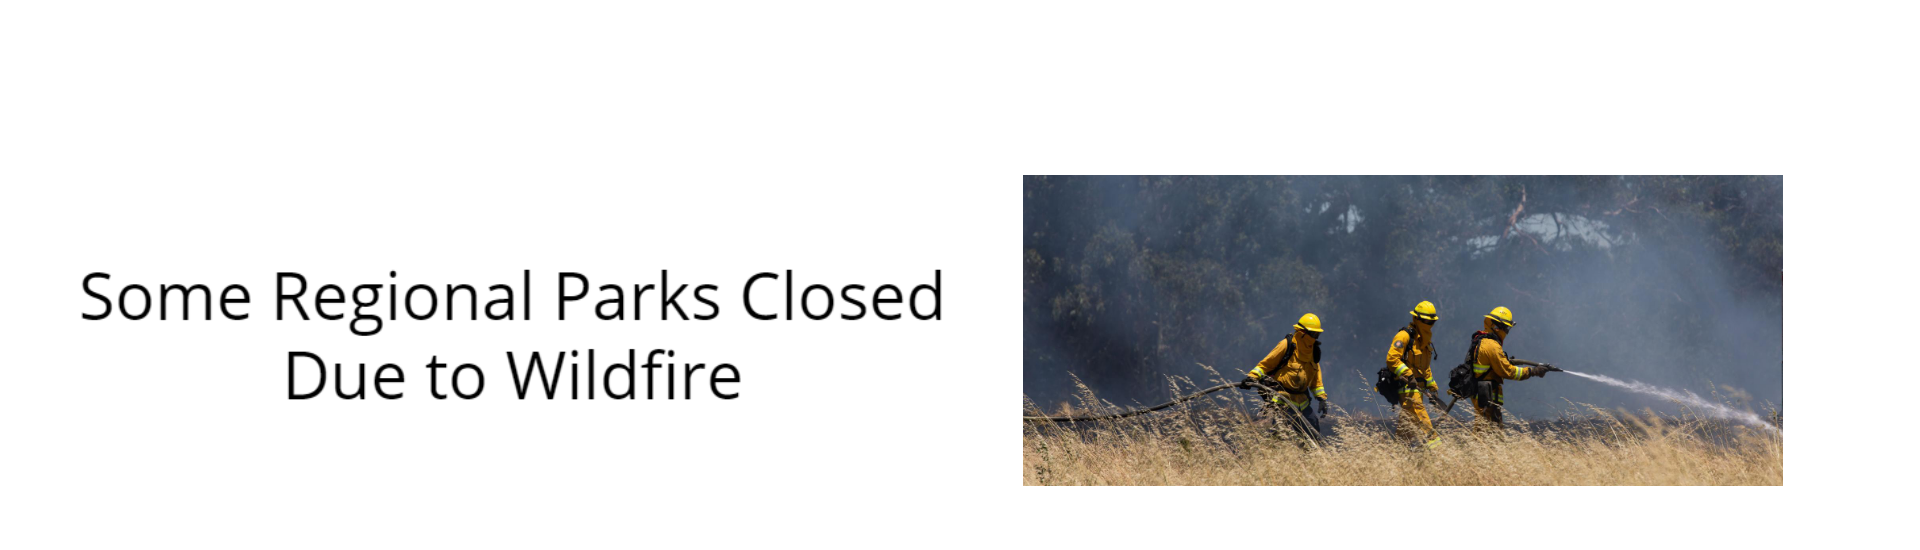 Some Regional Parks Closed Due to Wildfire